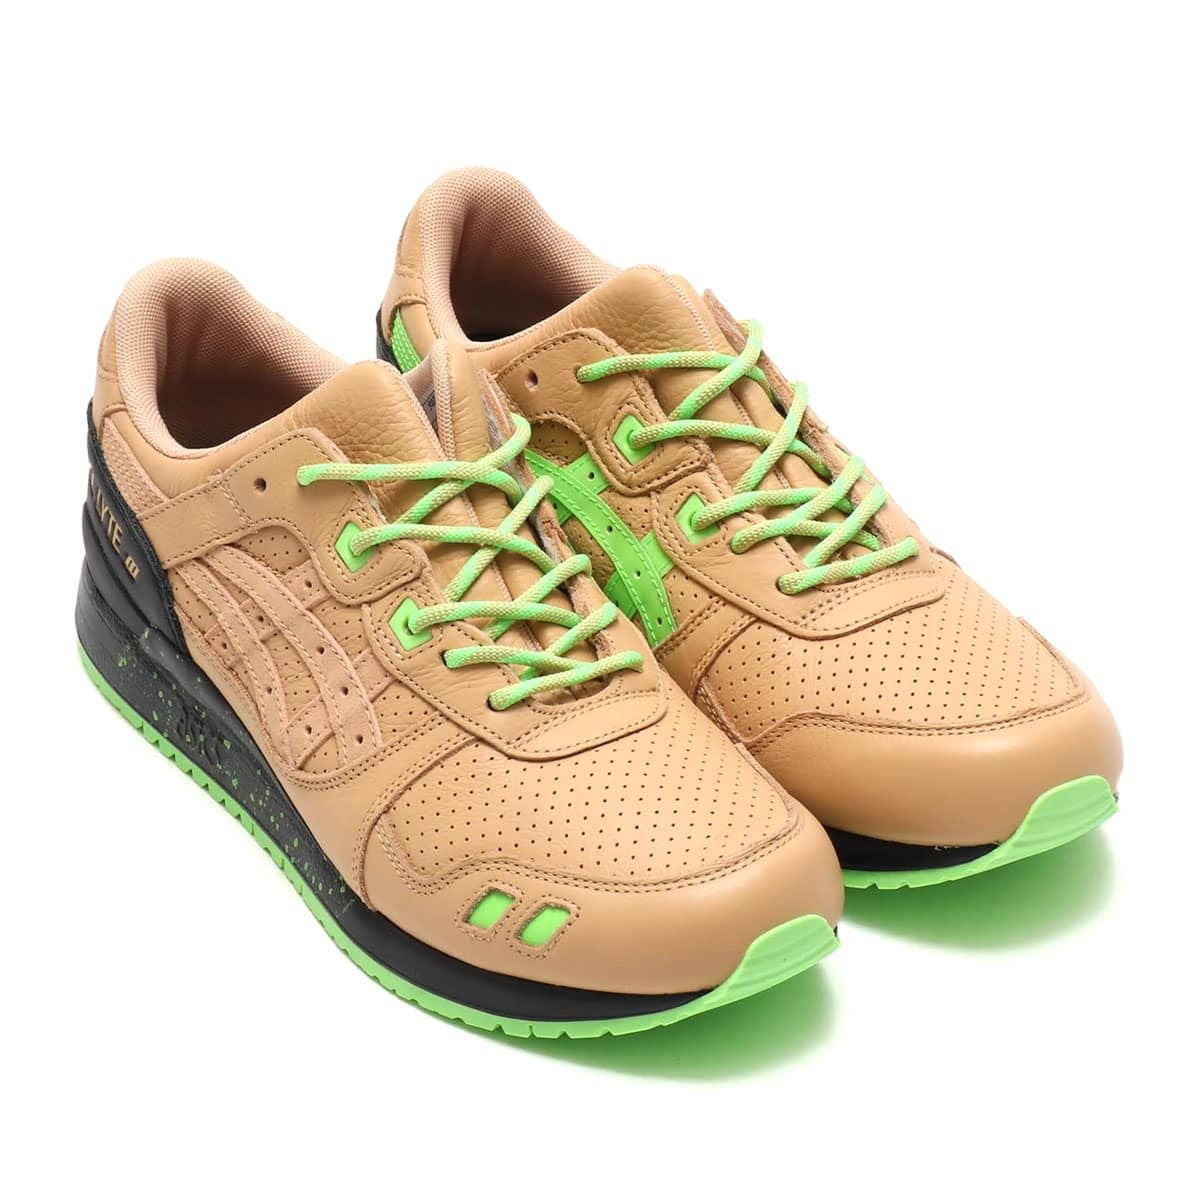 asics Tiger GEL-LYTE III SNKRFRKR BEIGE/GREEN 19SS-S_photo_large